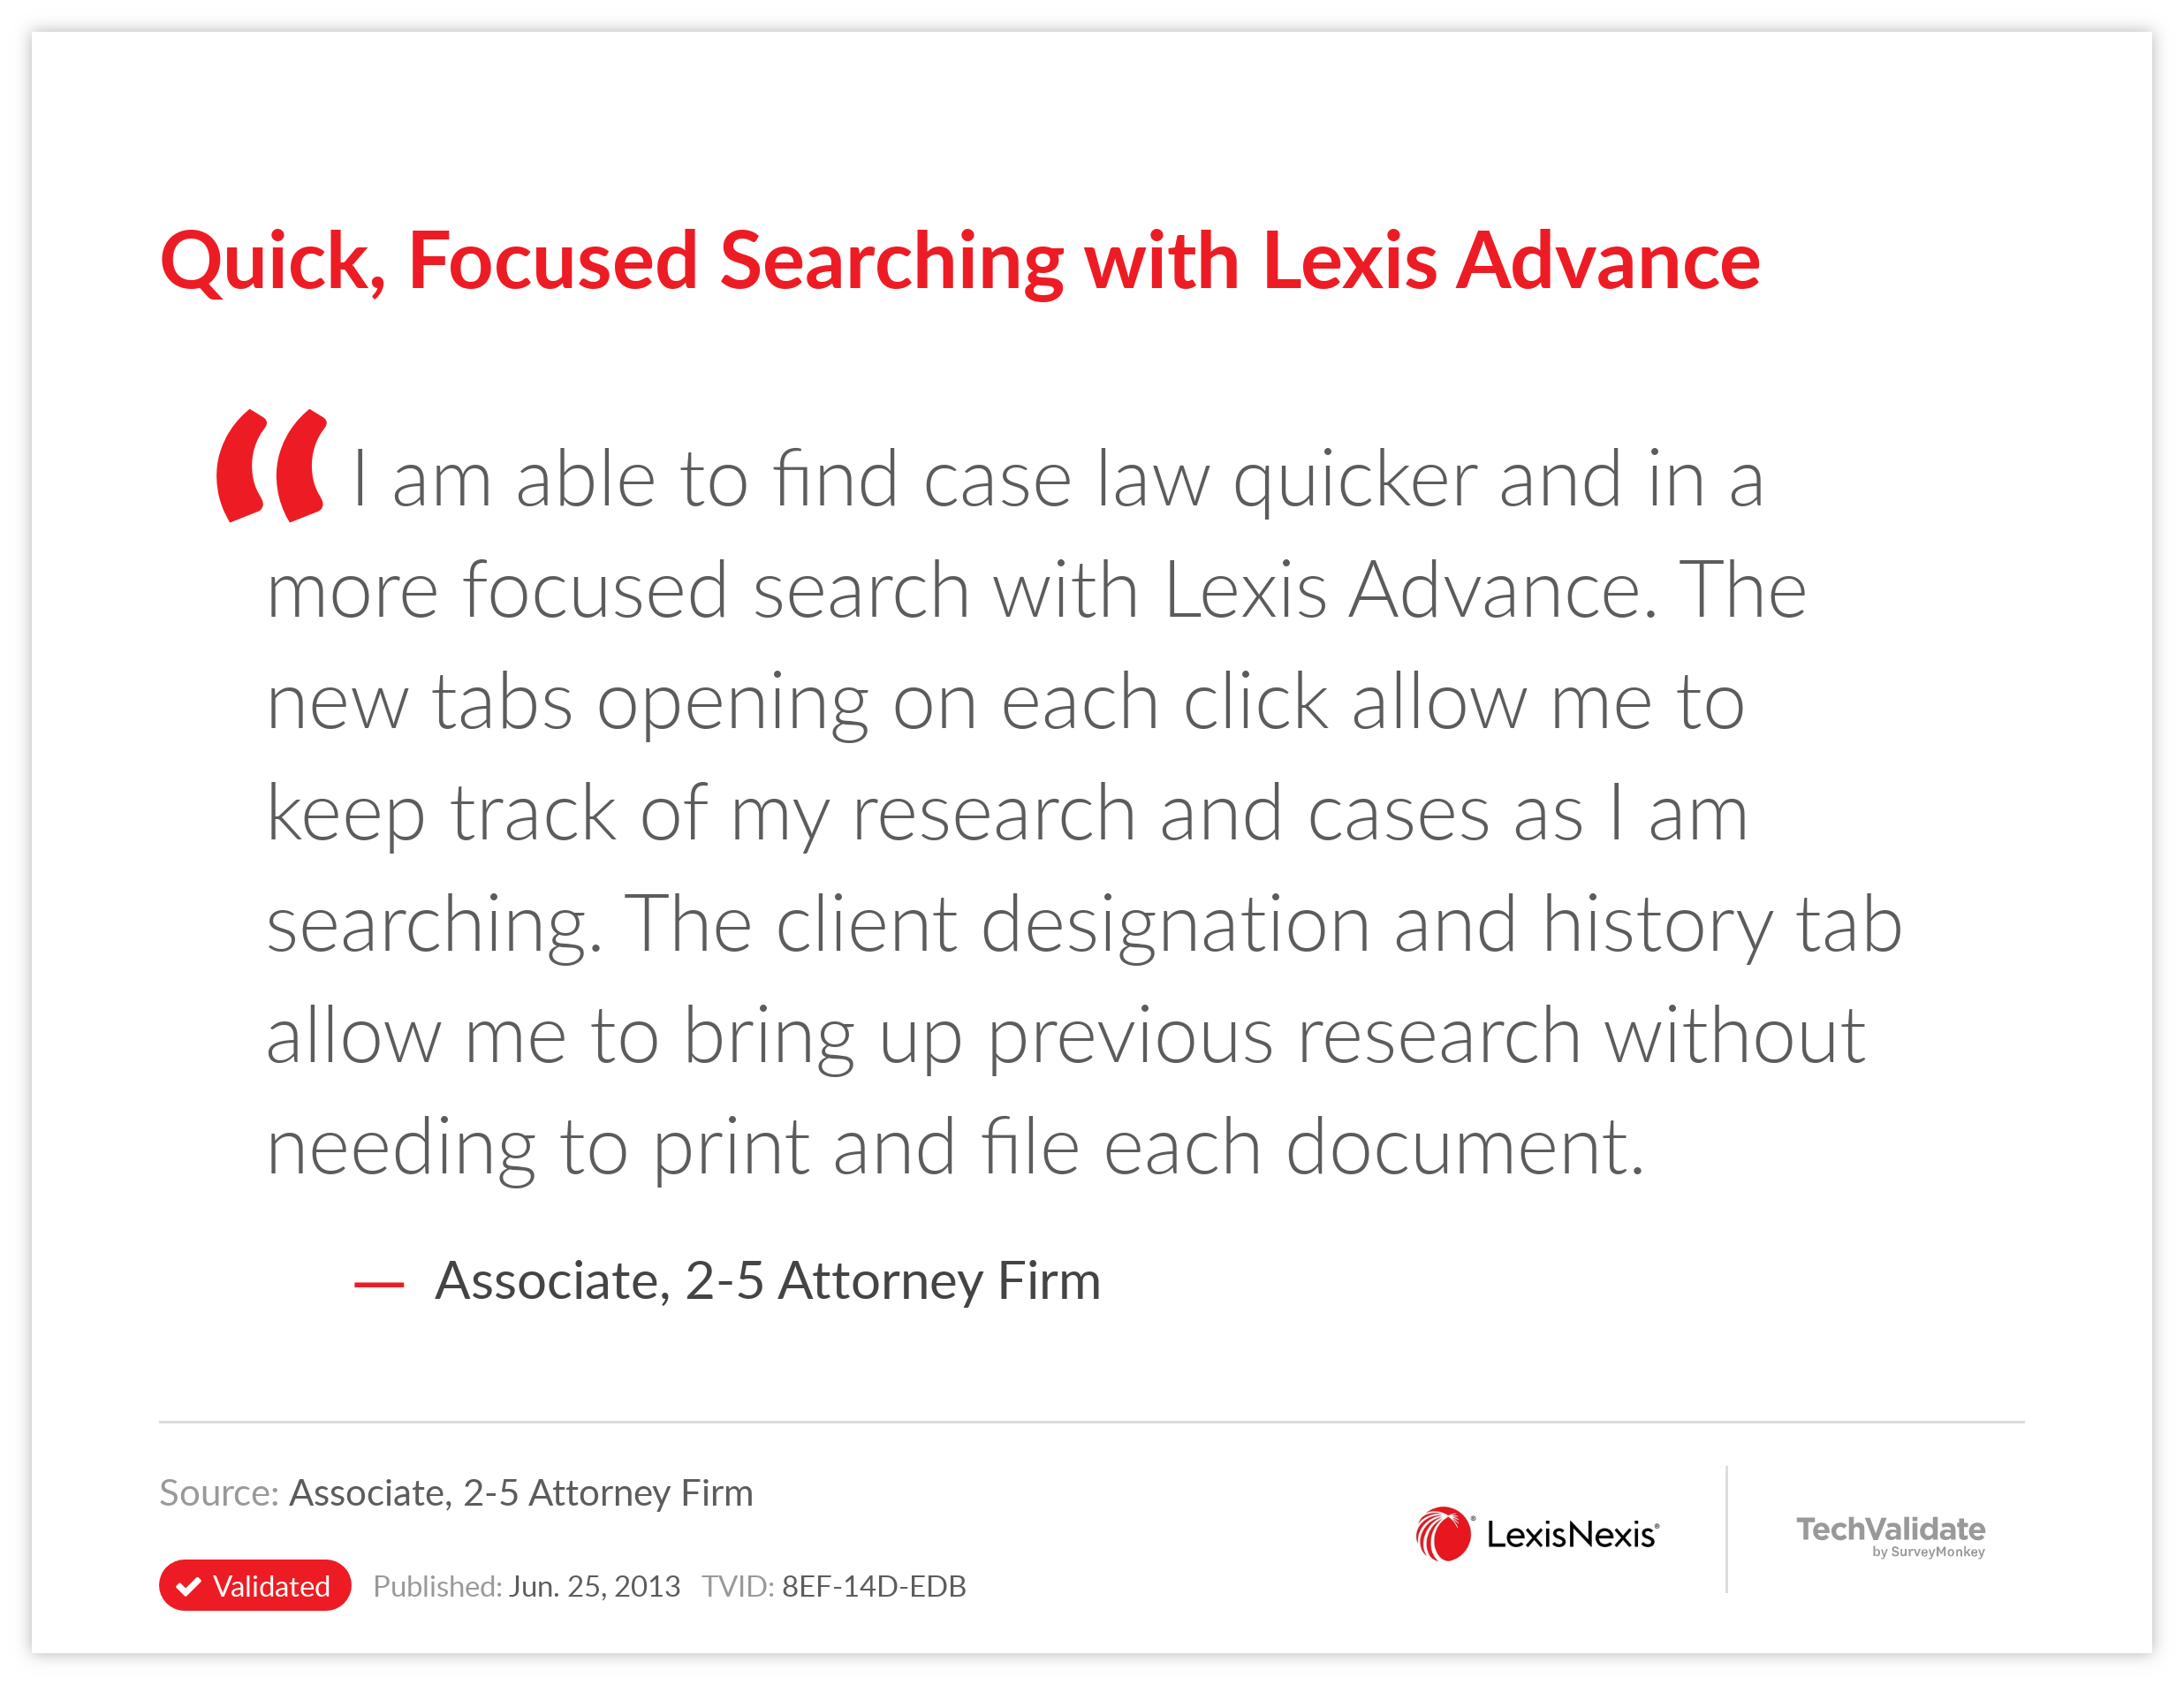 Quick, Focused Searching with Lexis Advance